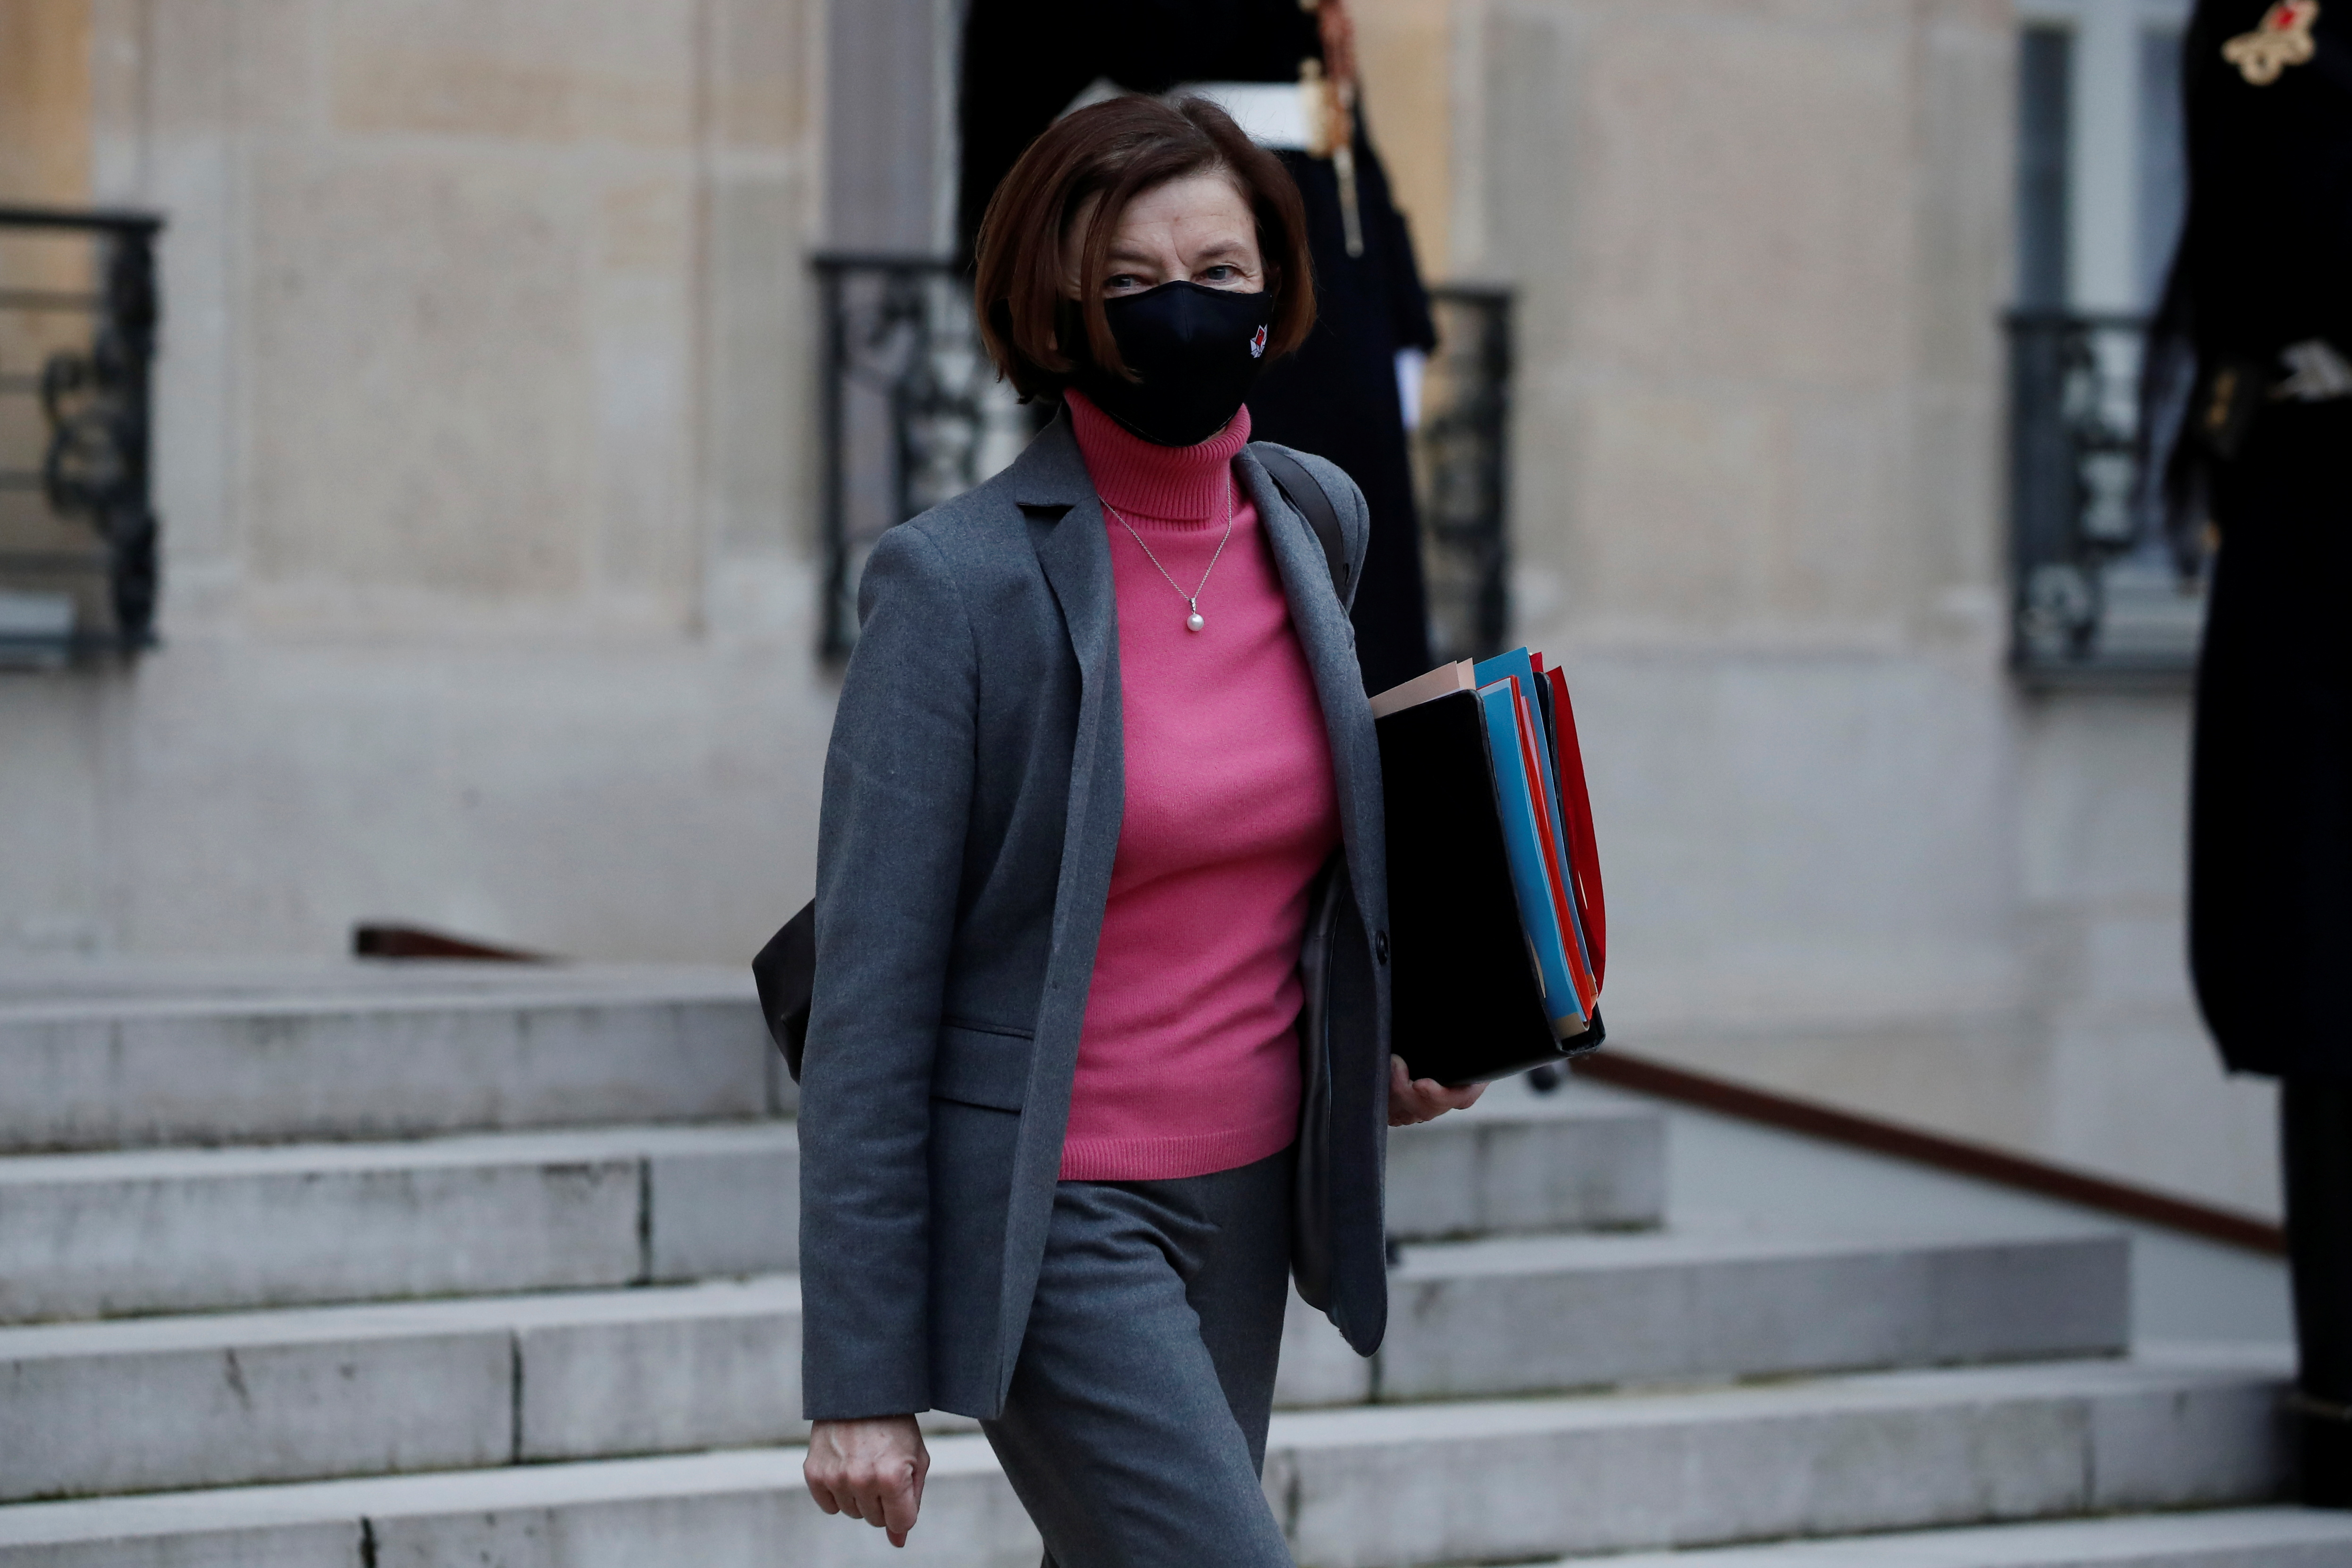 French Defence Minister Florence Parly, wearing a protective face mask, leaves following the weekly cabinet meeting at the Elysee Palace in Paris, France, January 6, 2021. REUTERS/Benoit Tessier